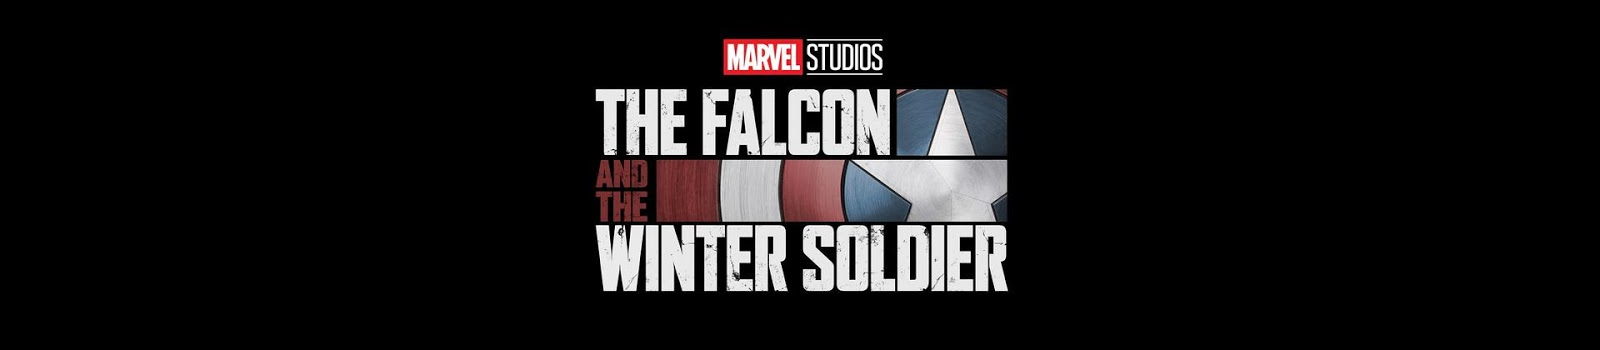 D23 2019 Disney+, The Falcon and The Winter Soldier